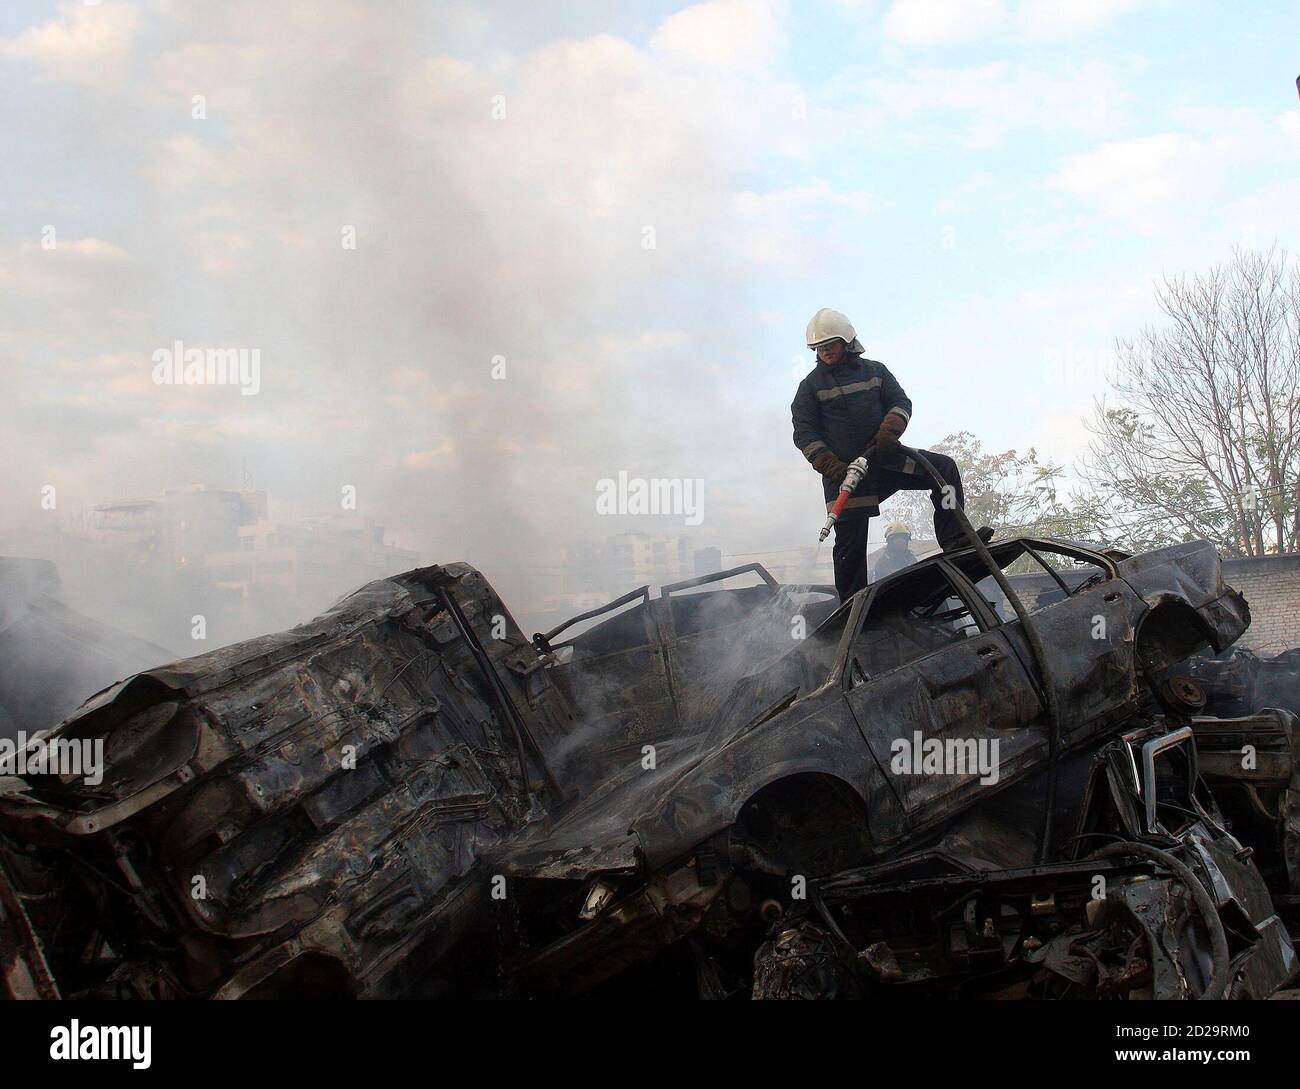 An Albanian firefighter tries to contain a fire at a used car yard in Tirana November 19, 2008.            REUTERS/Arben Celi (ALBANIA) Stock Photo